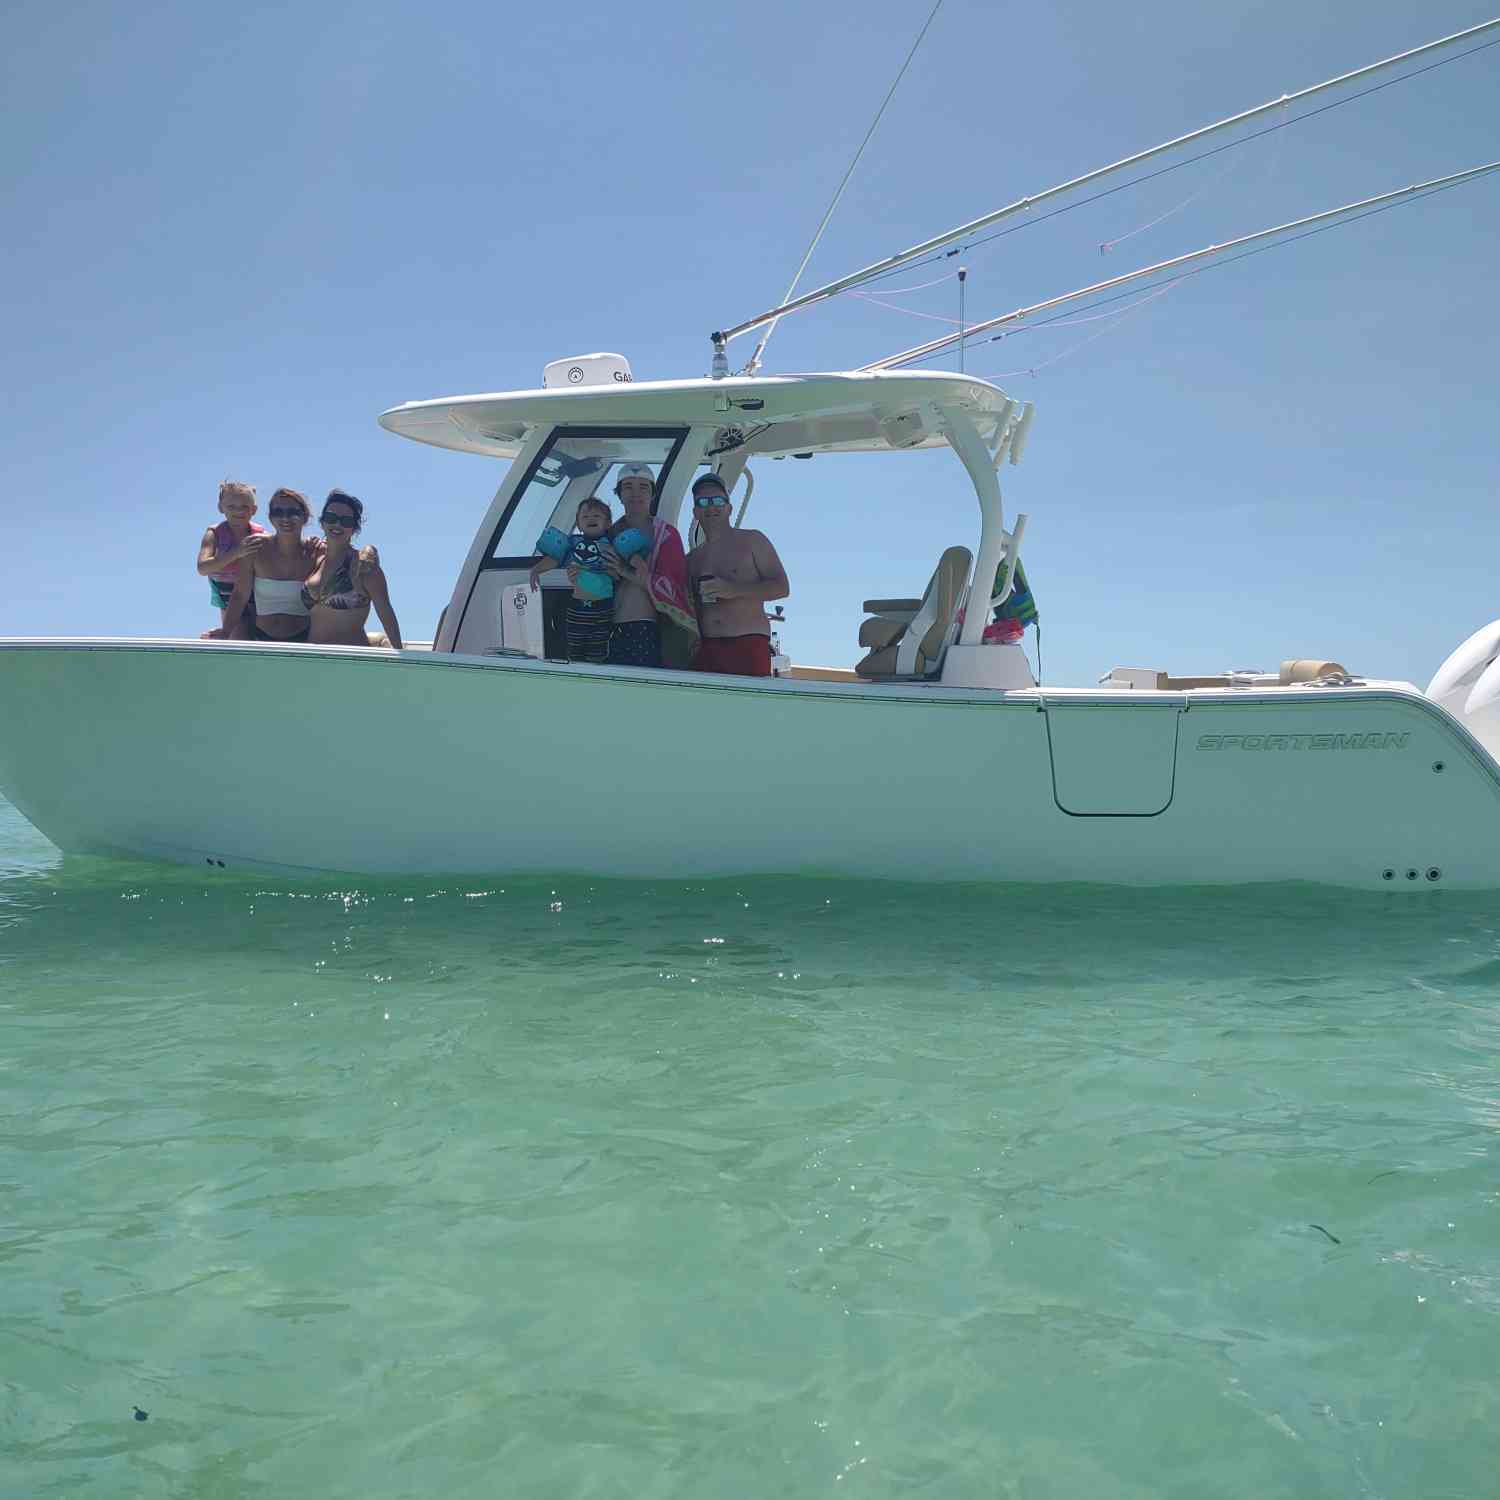 Title: Island hopping - On board their Sportsman Open 302 Center Console - Location: Marvin key. Participating in the Photo Contest #SportsmanMay2021